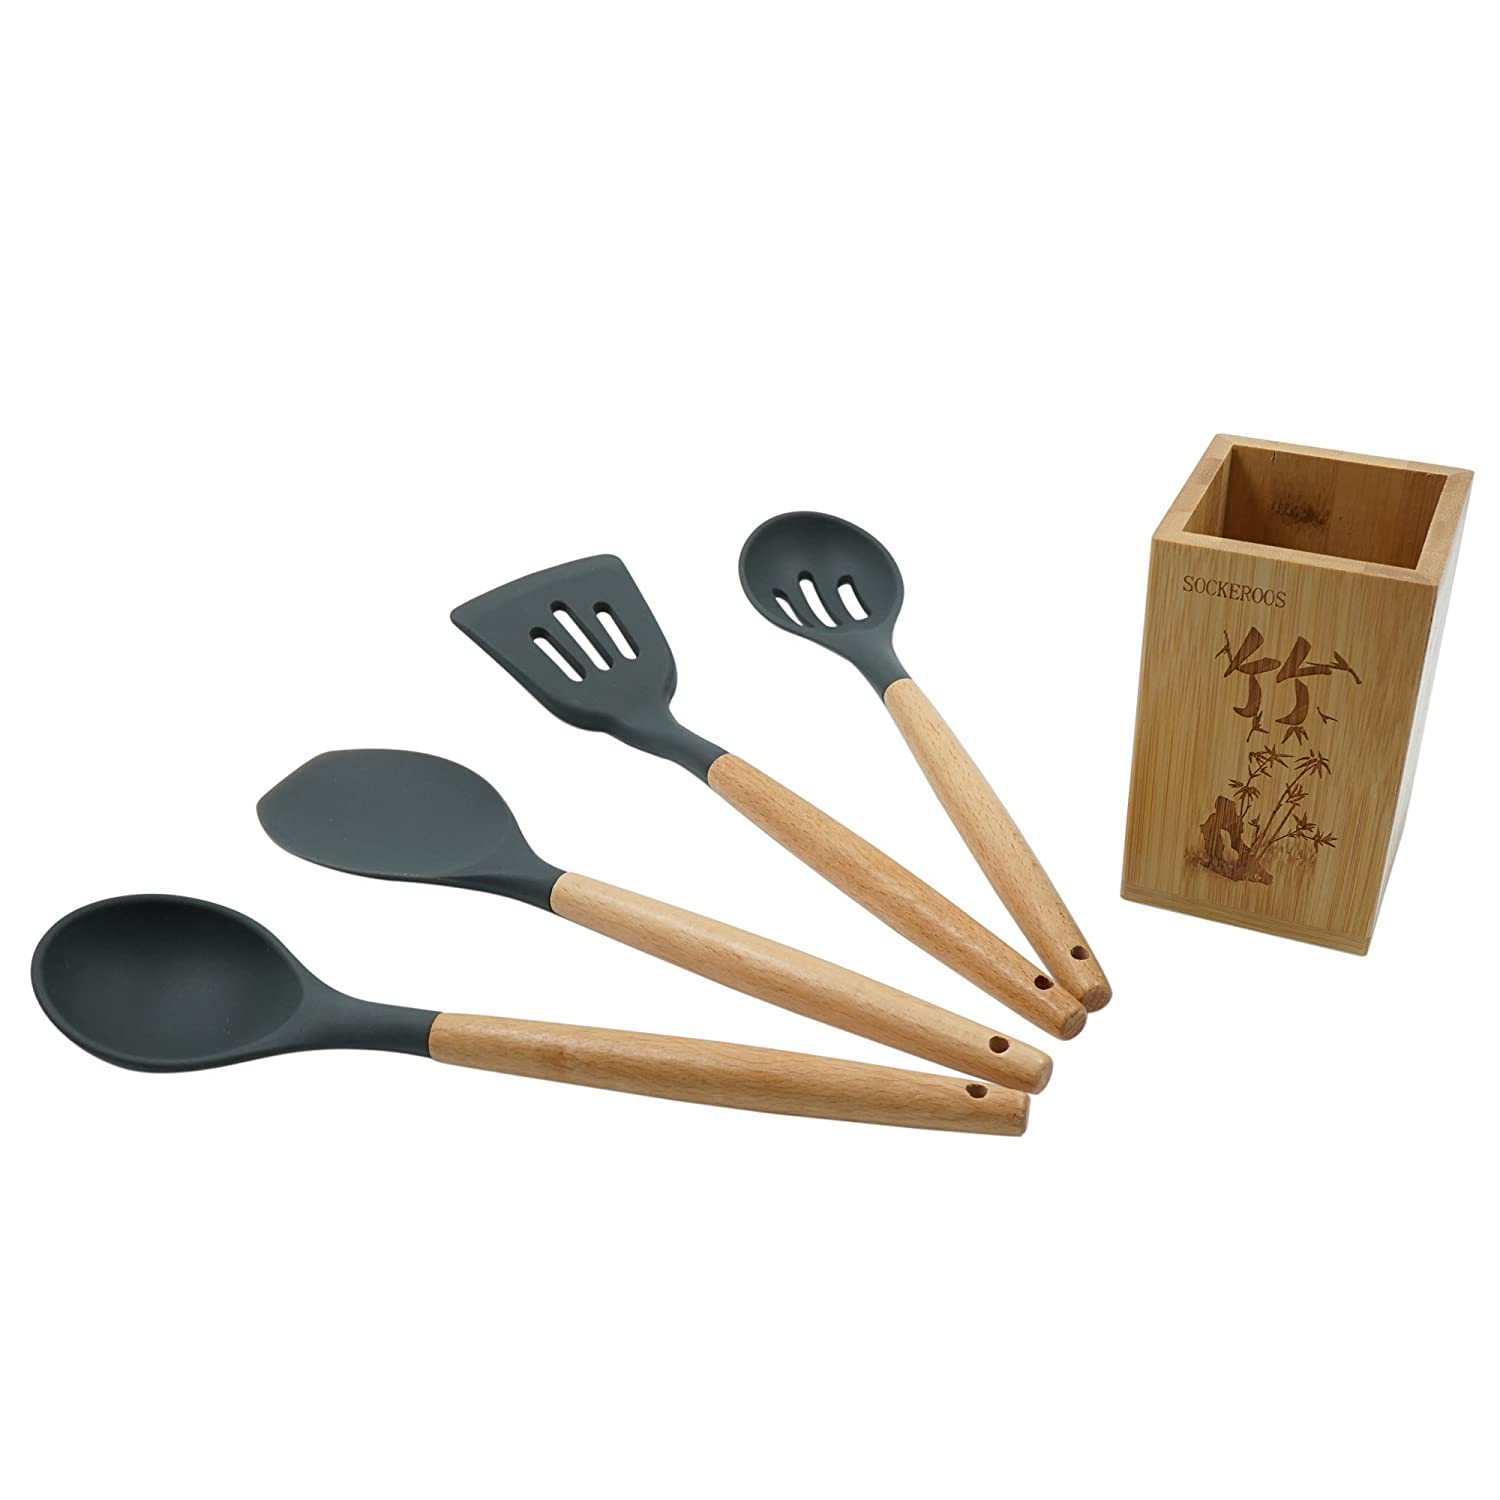 Silicone Kitchen Utensil 5 Pcs Cooking Tools Set with Beech Wood Handle, Bamboo Utensils Holder Included Sockeroos